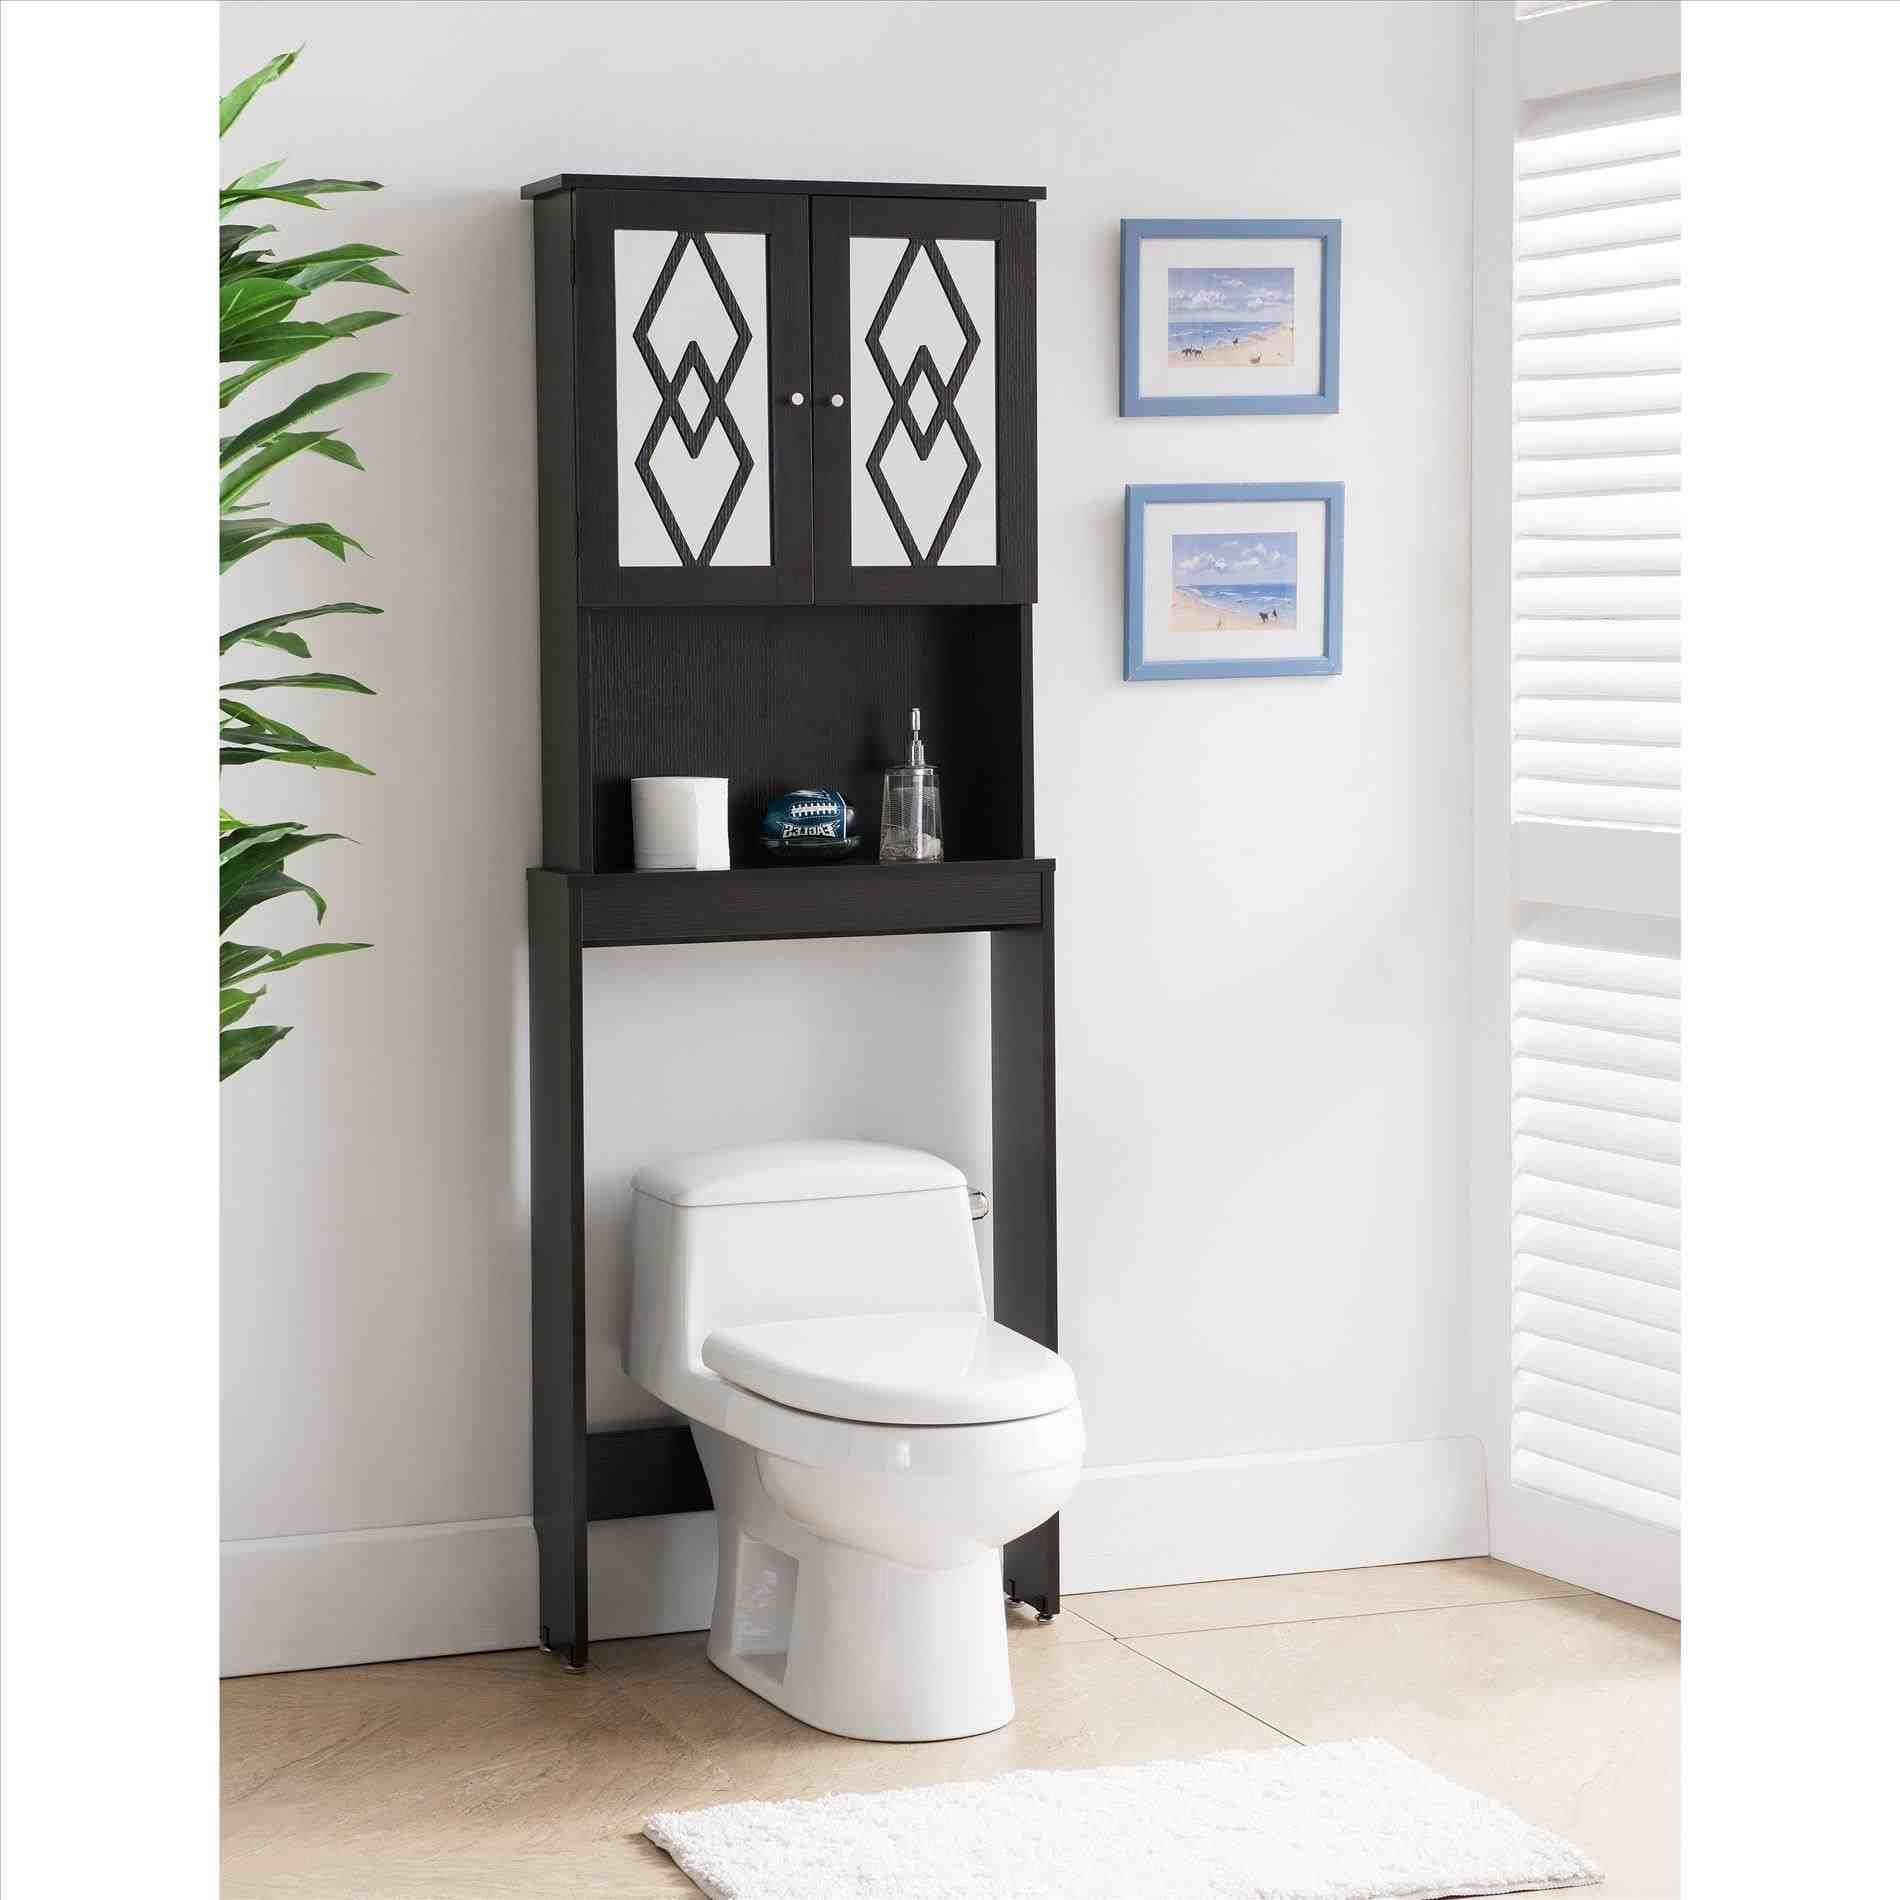 This Bathroom Etagere Ikea 97 Lighting For Small Bathrooms Wkz Remodeling Ideas Es Wooden Vanity Cabinets Sink And